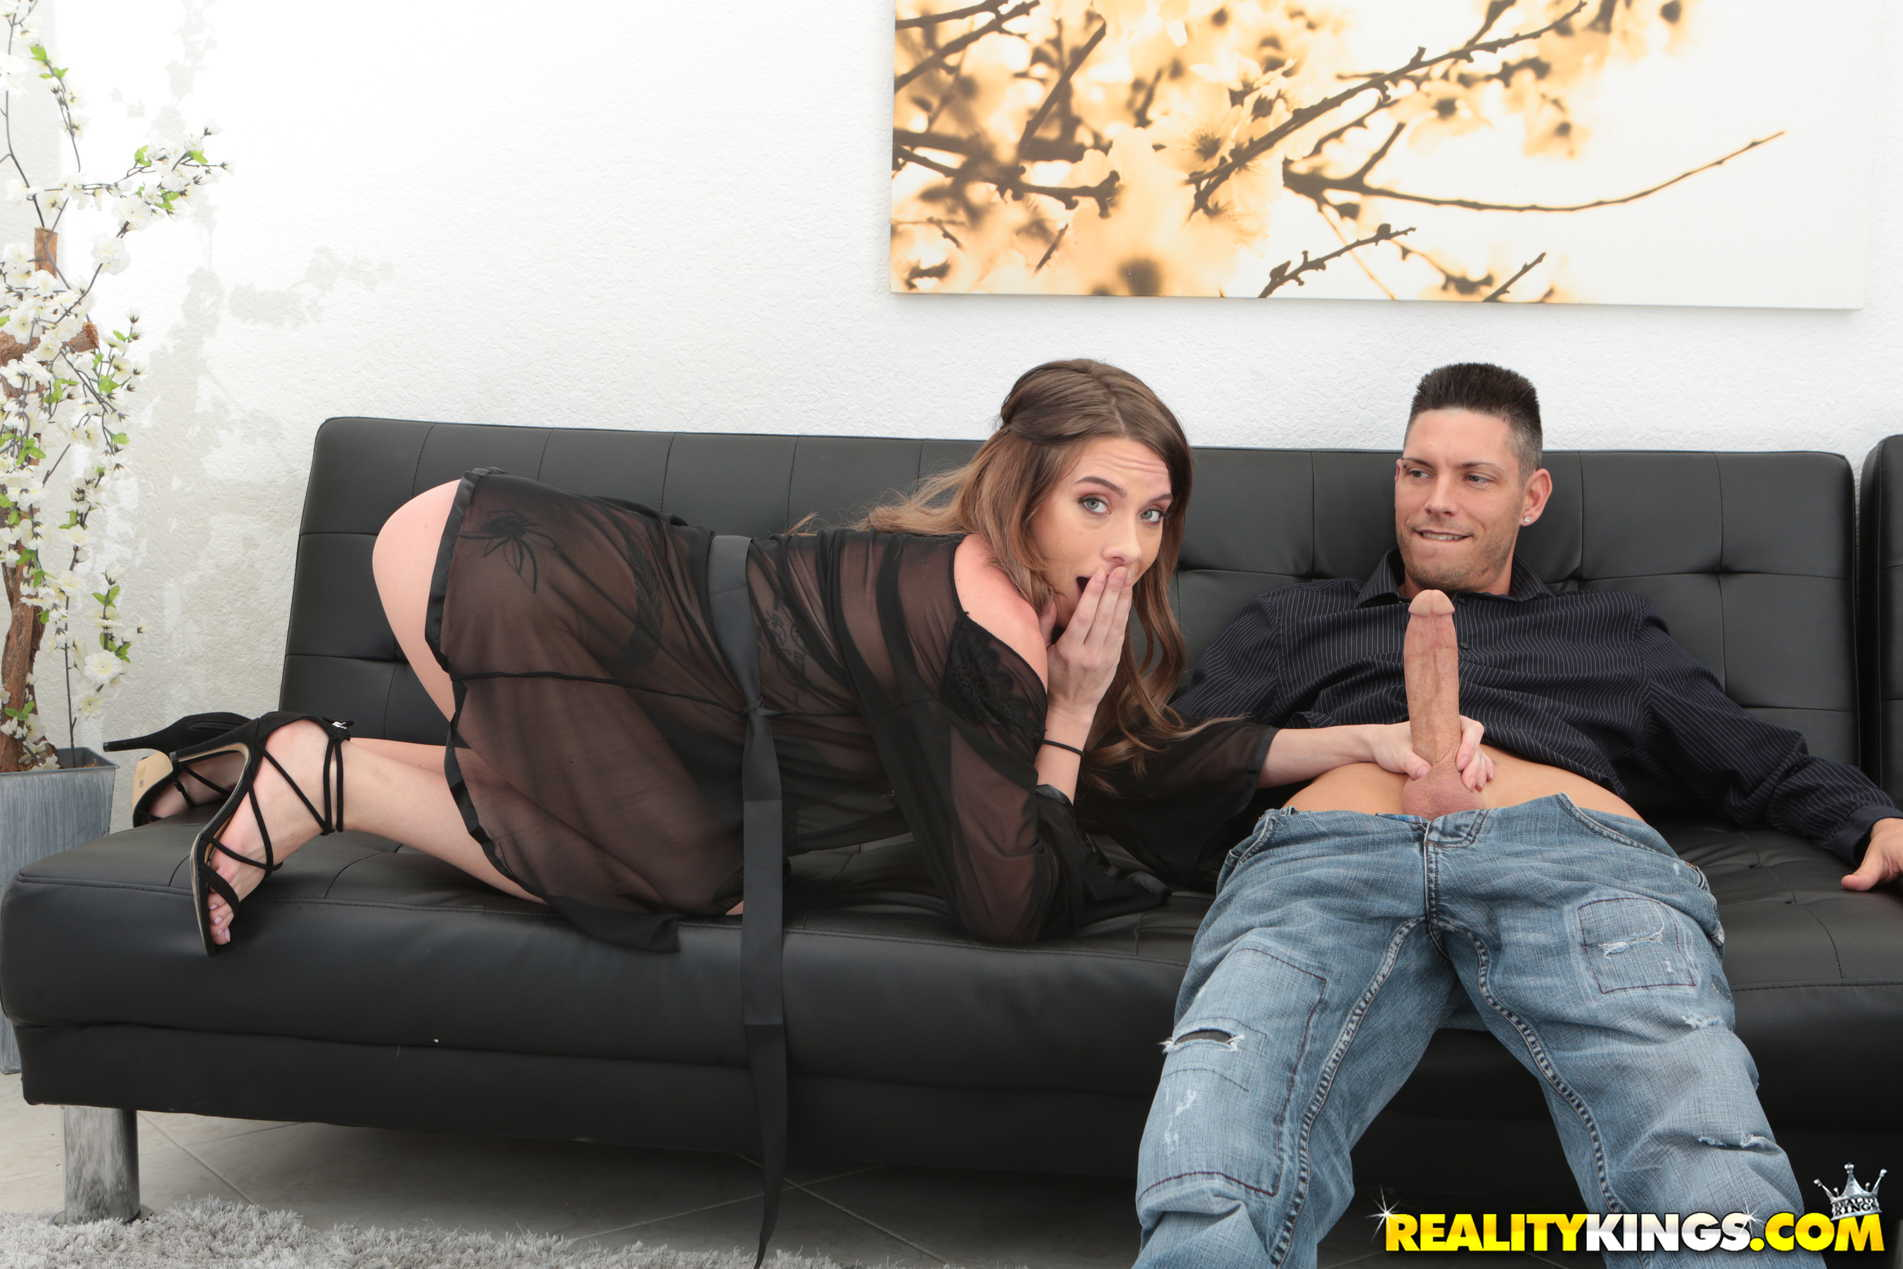 Reality Kings 'Just Like My Big Sis' starring Lexi Brooke (Photo 117)